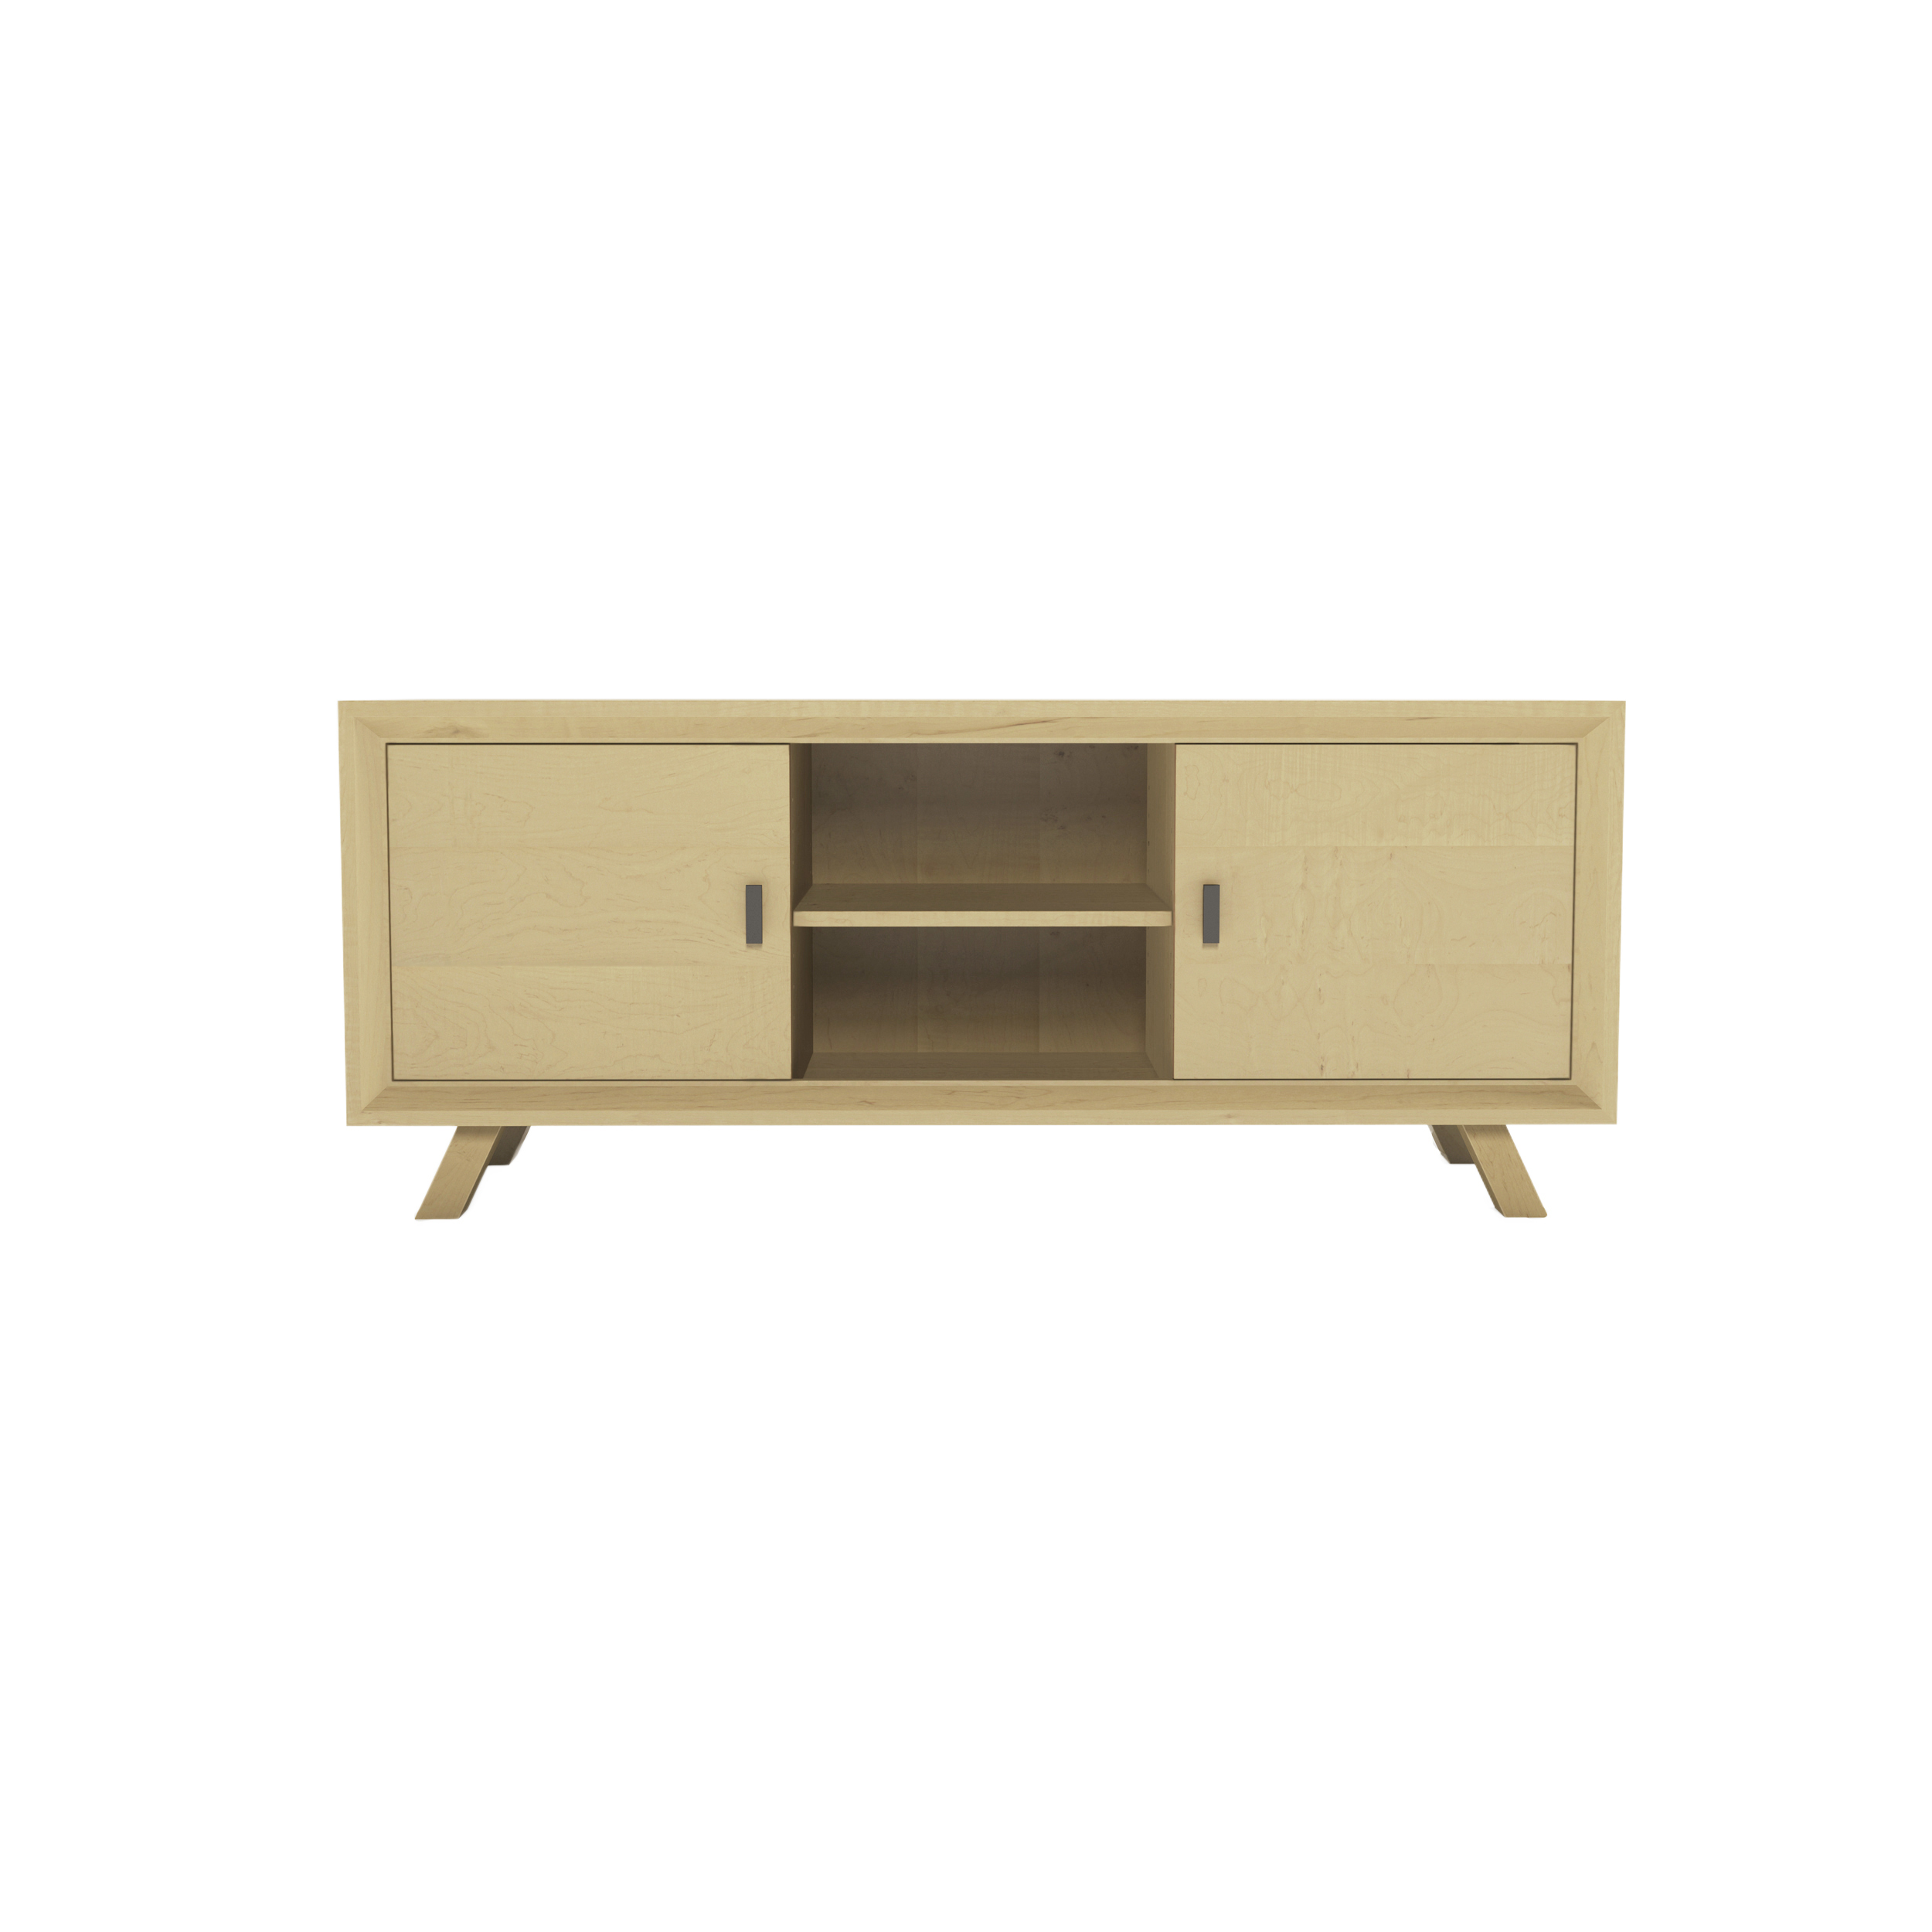 Series 555 Media Cabinet With Two Doors At 60″ In Width